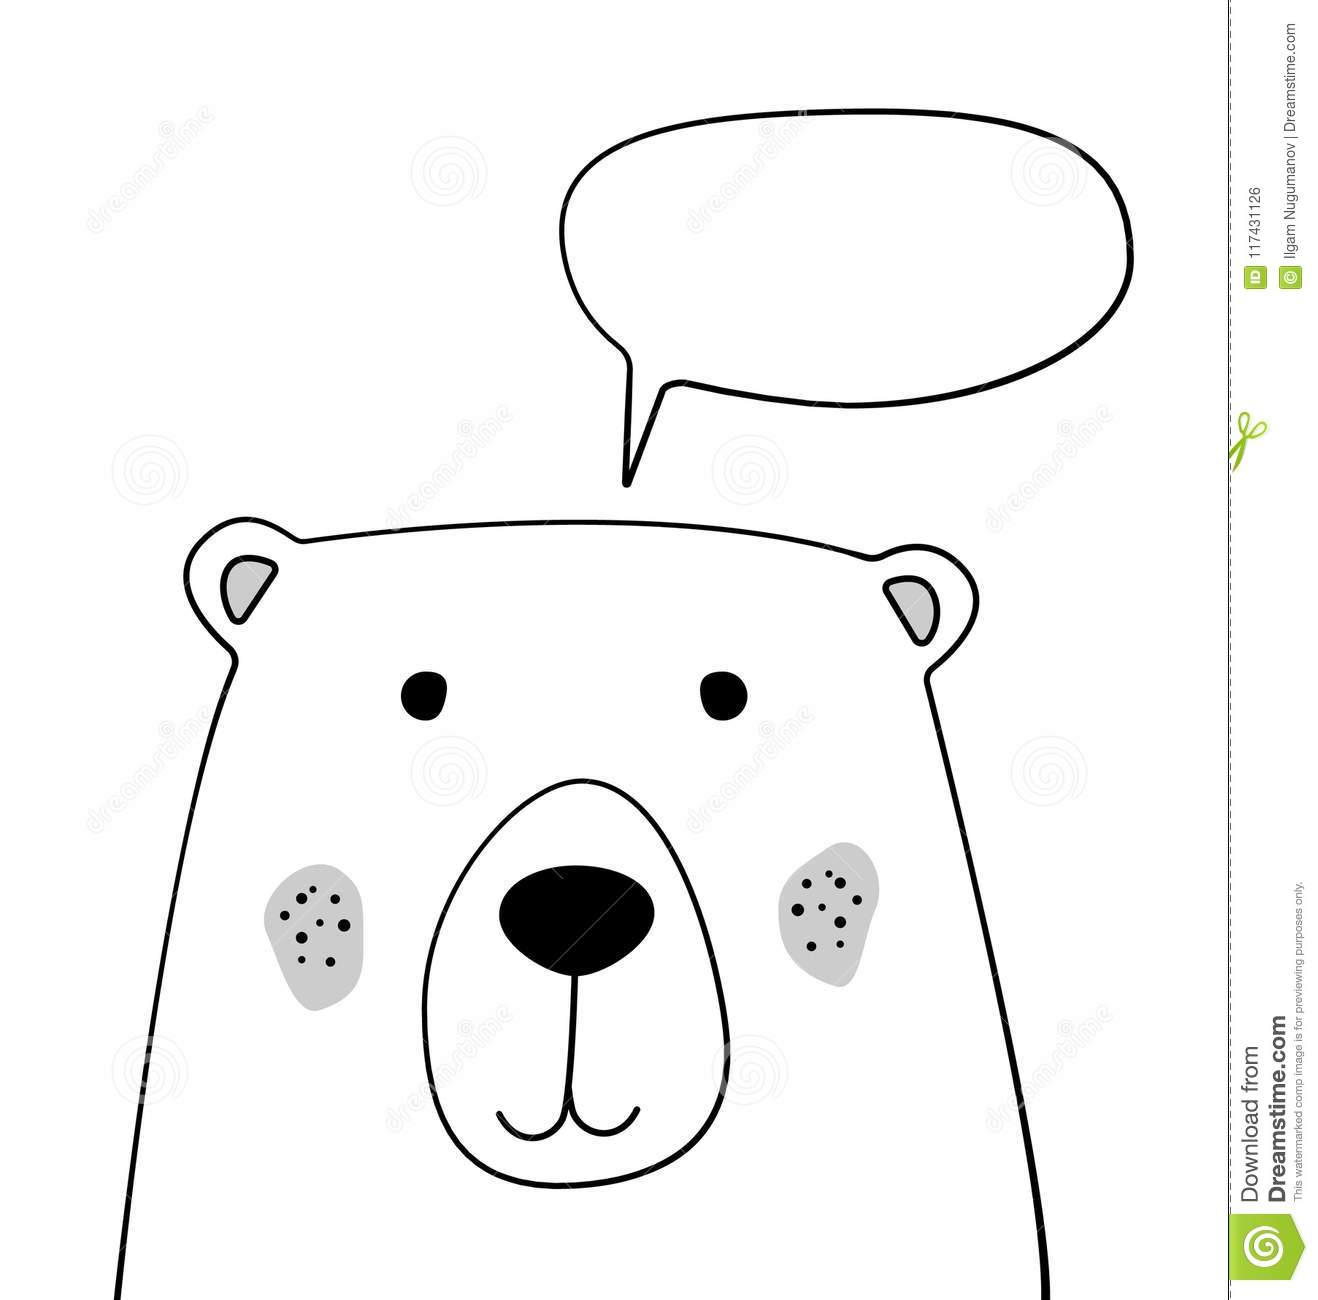 doodle cartoon bear with chat cloud sketch illustration talking